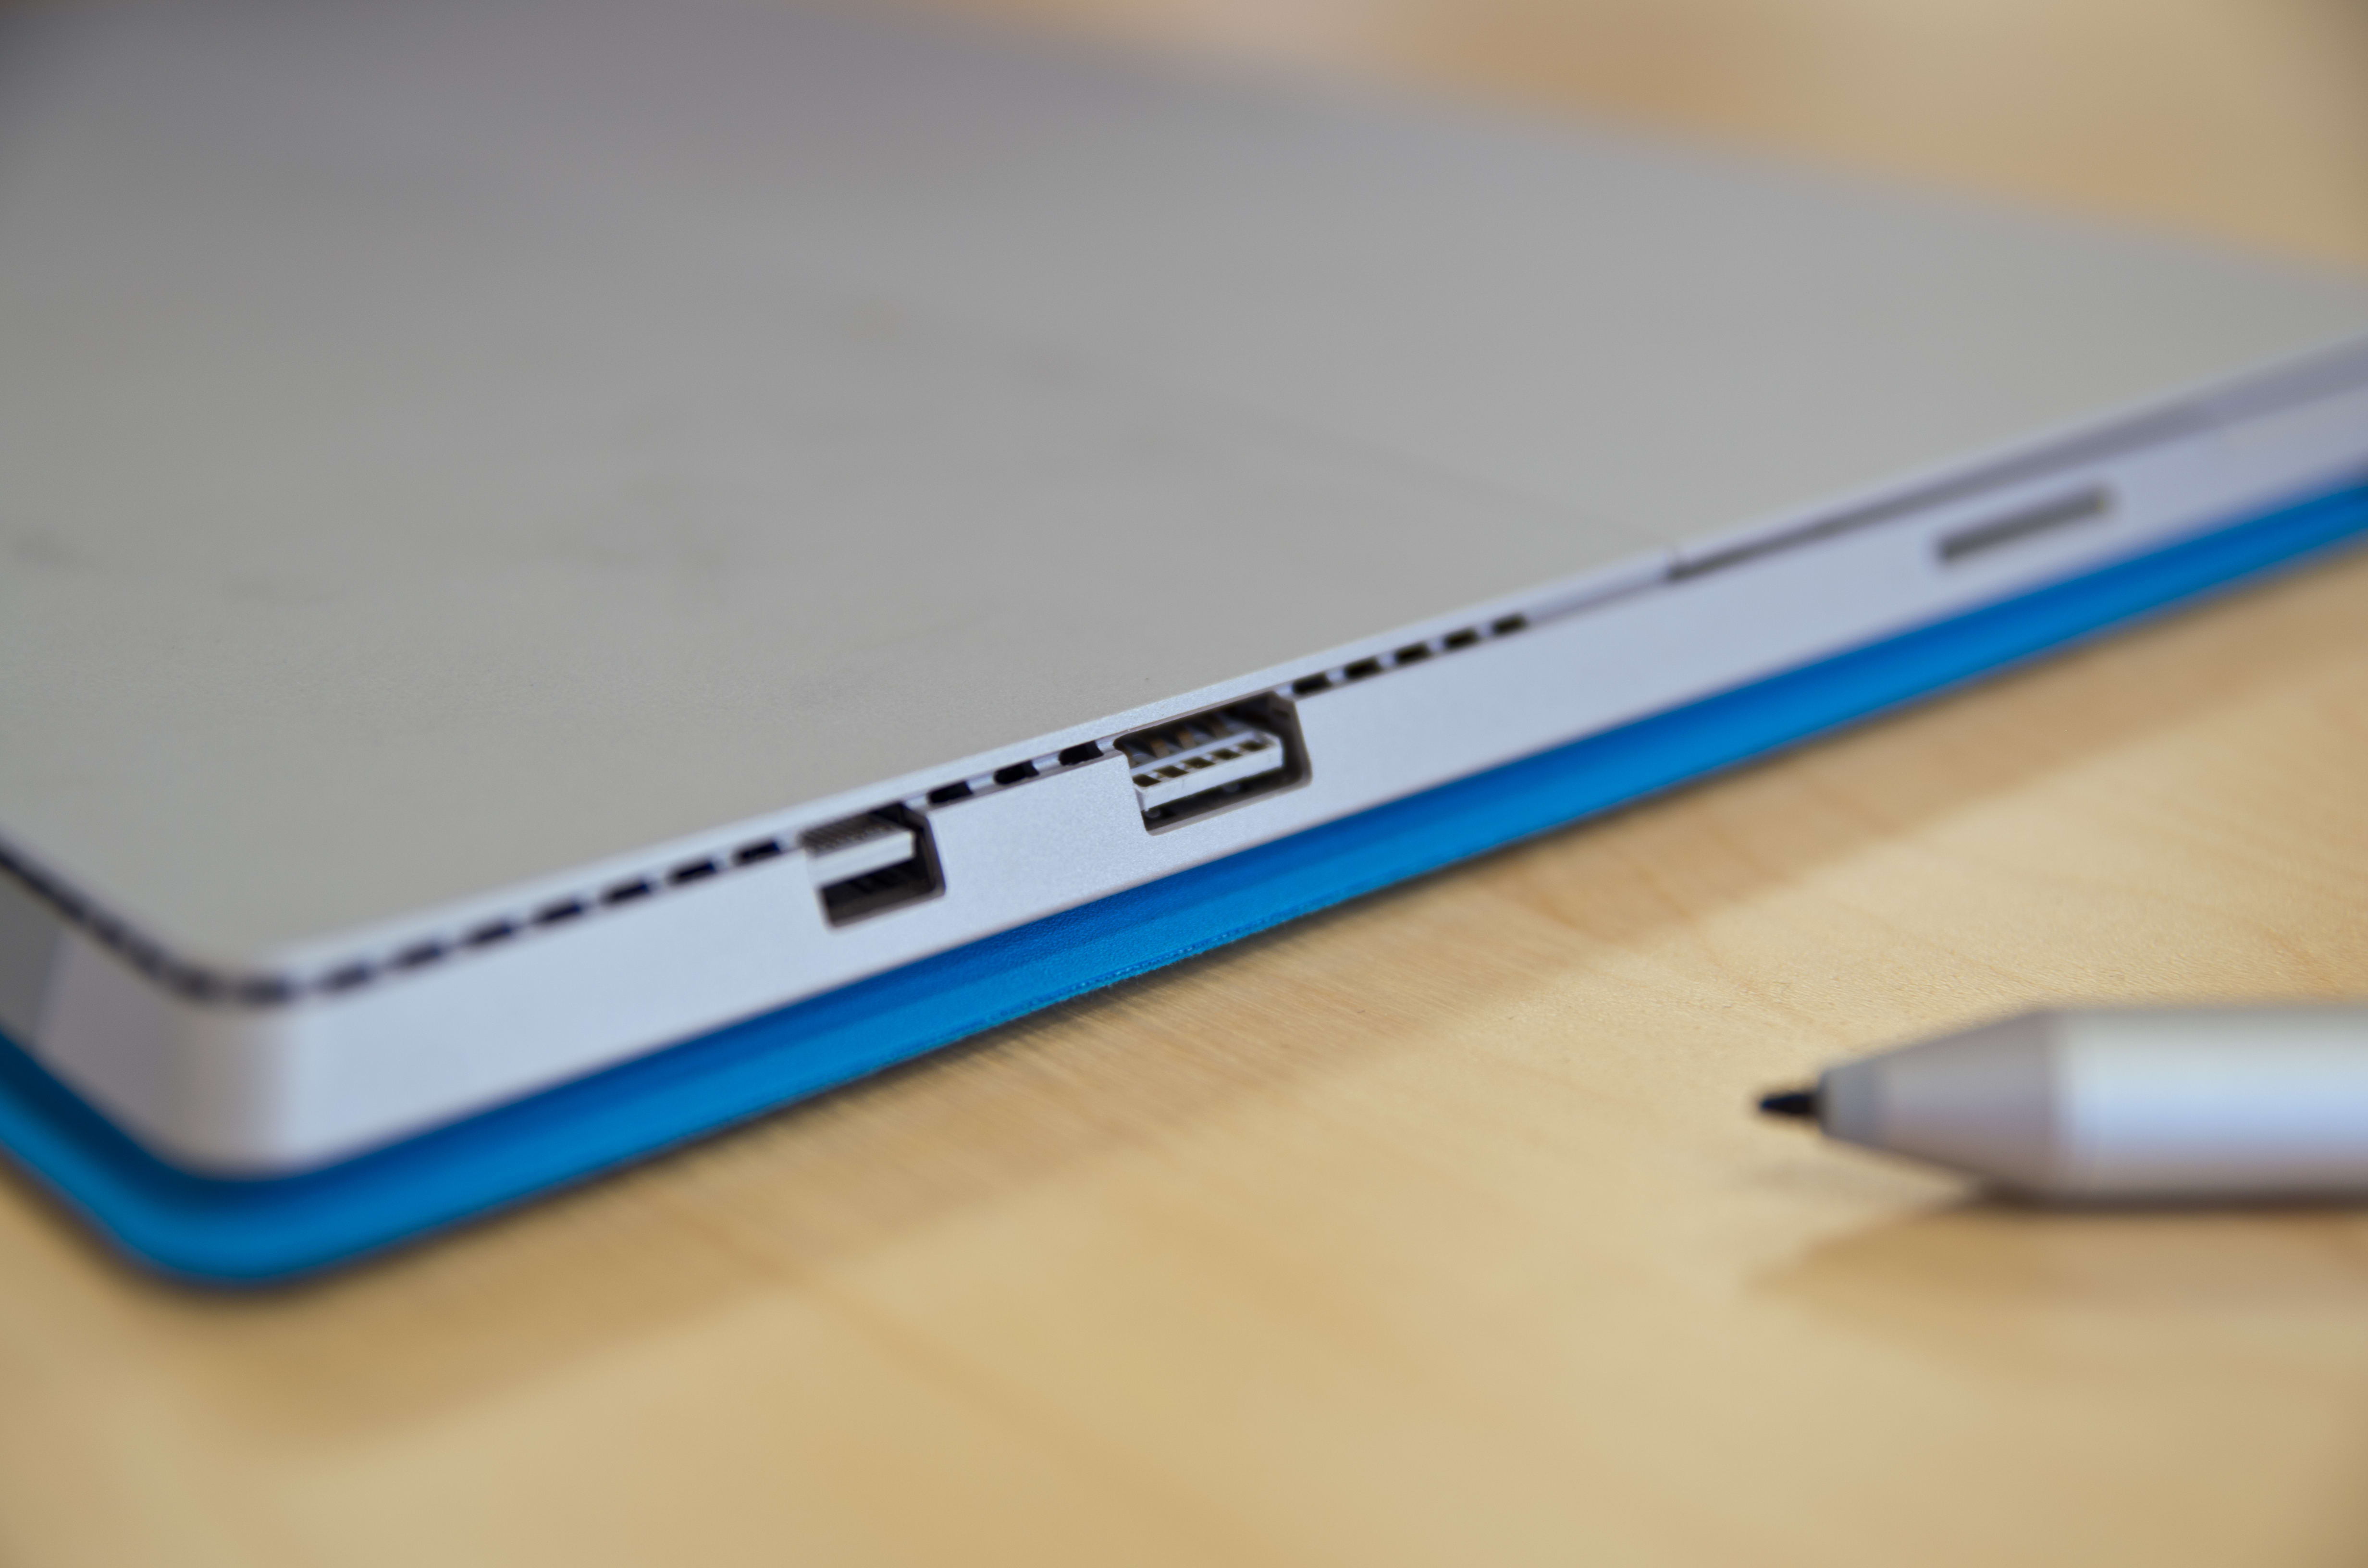 A closer look at the Microsoft Surface Pro 3's USB port.